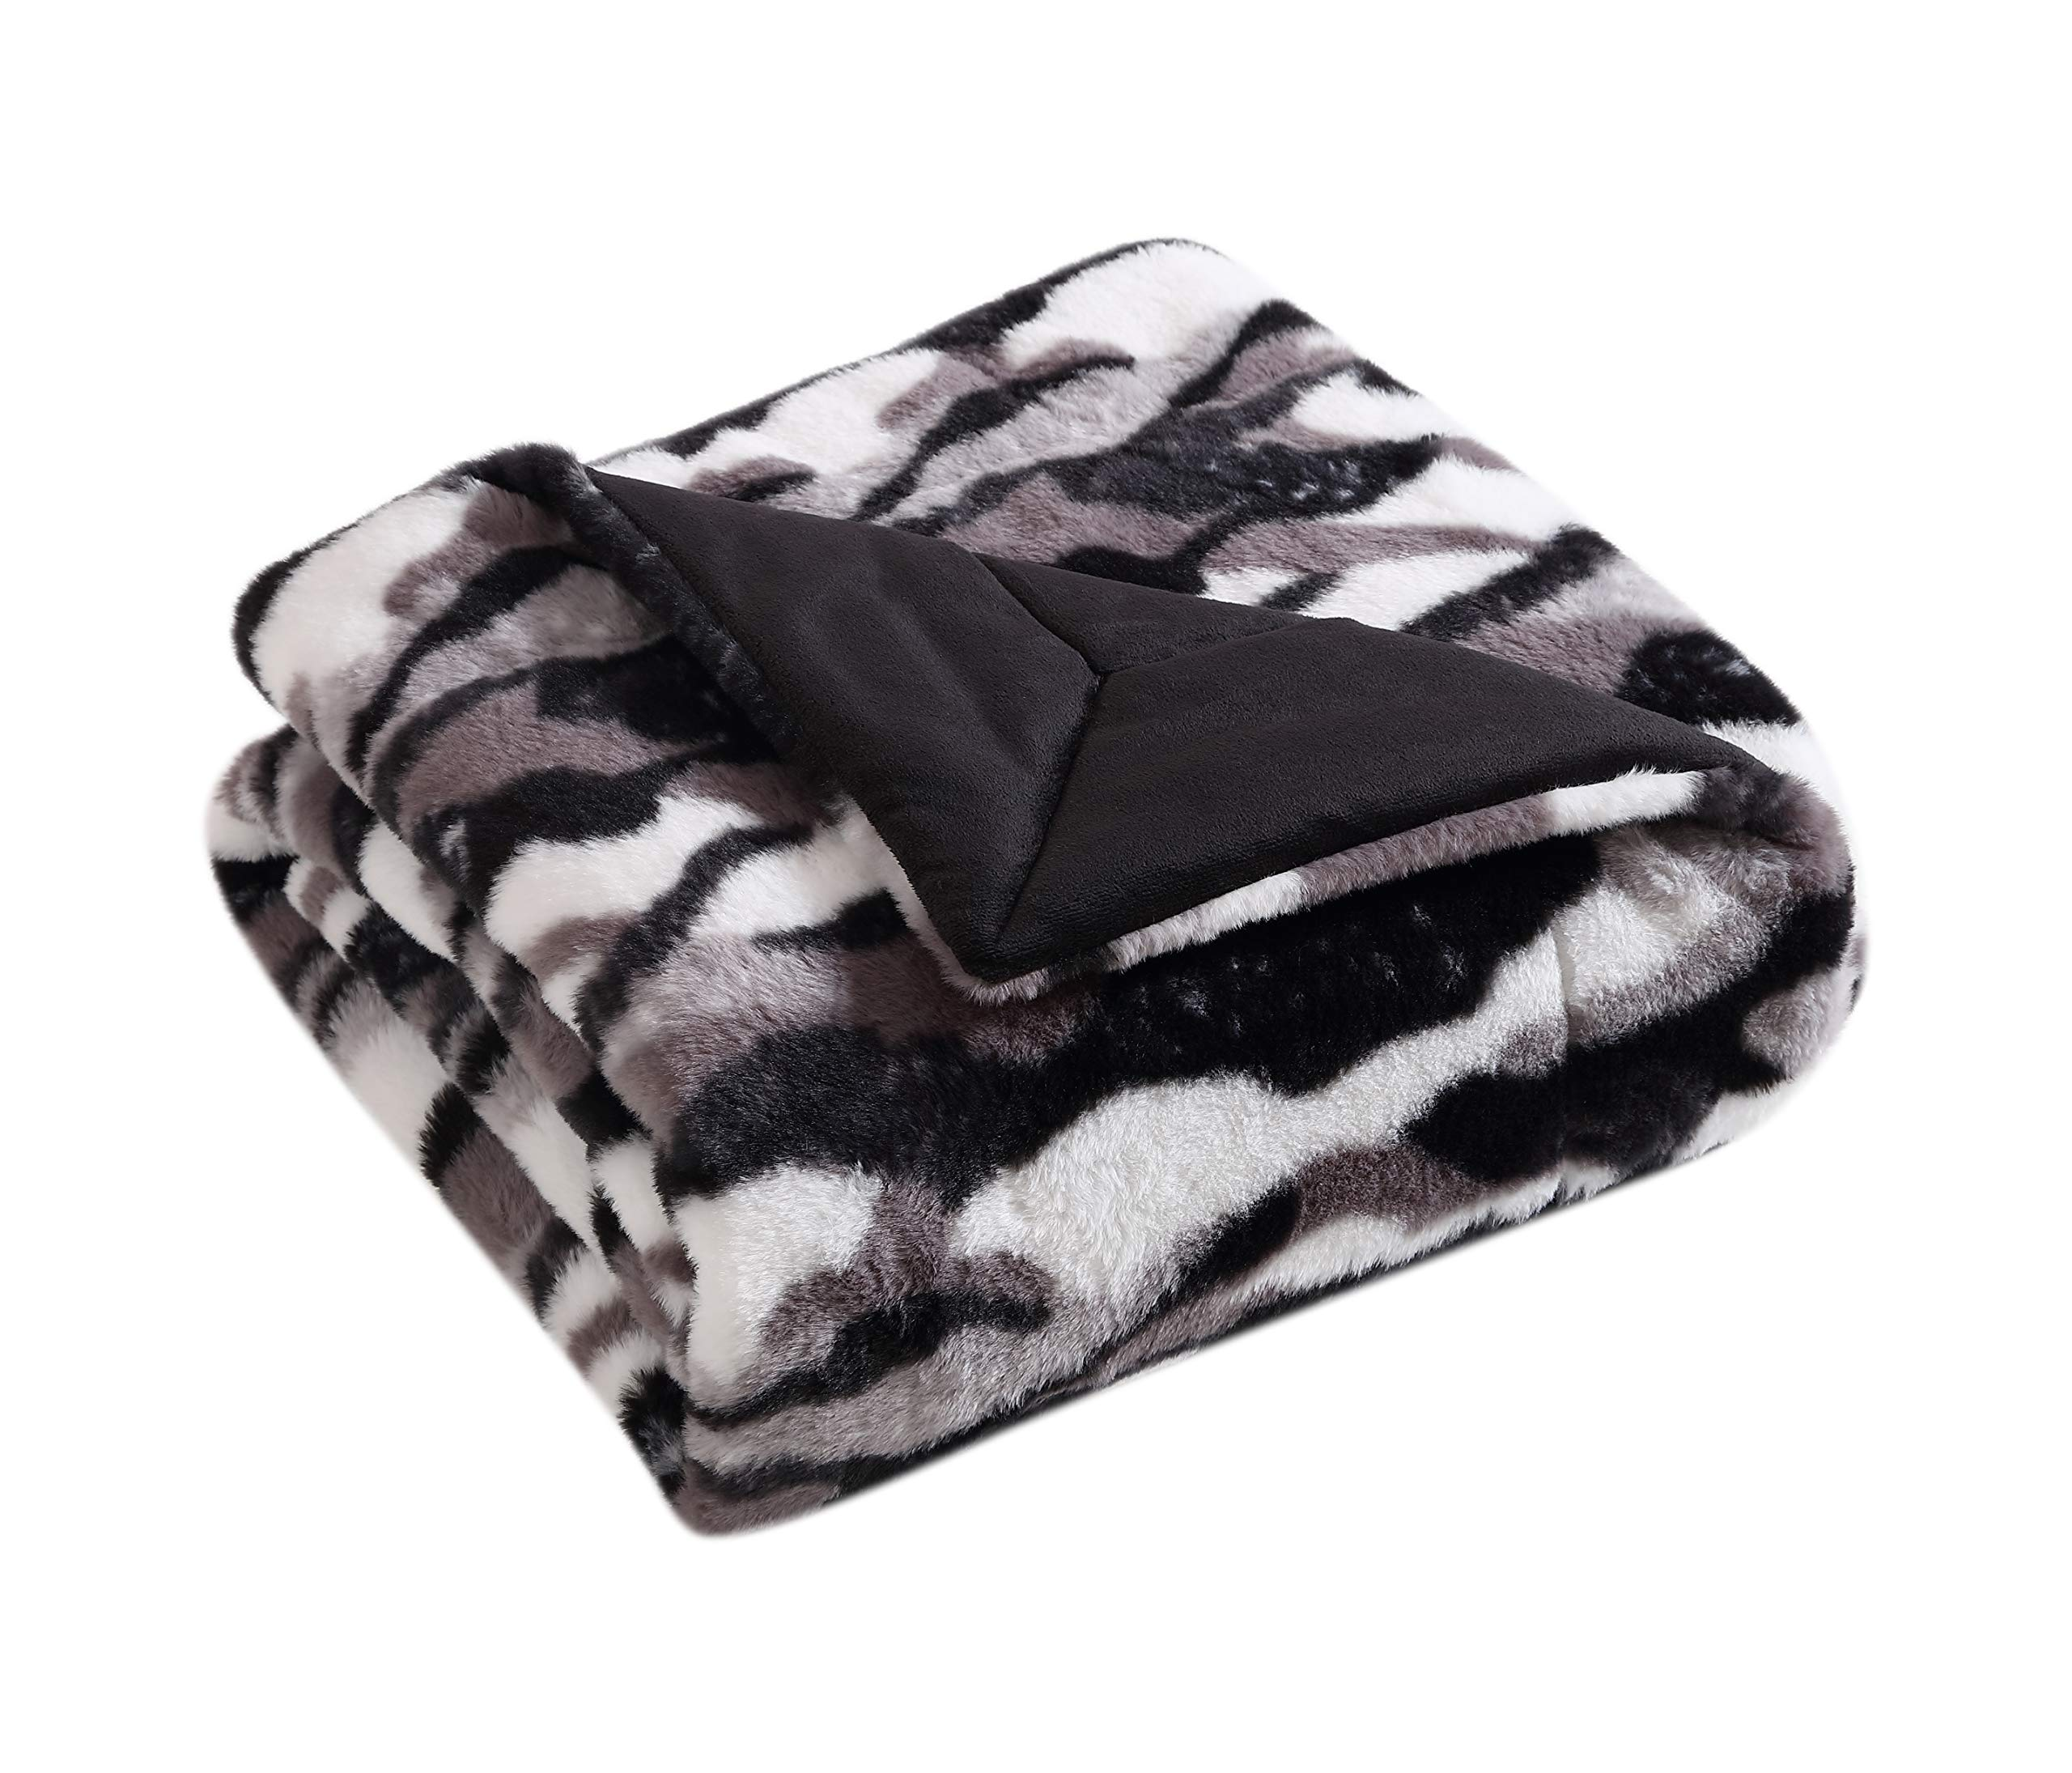 Morgan Home Fashions Luxury Ultra-Plush Textured Faux Fur Throw Blanket- Soft, Warm & Cozy Solid Faux Mink Plush Back 3 Colors Available (Exotic)